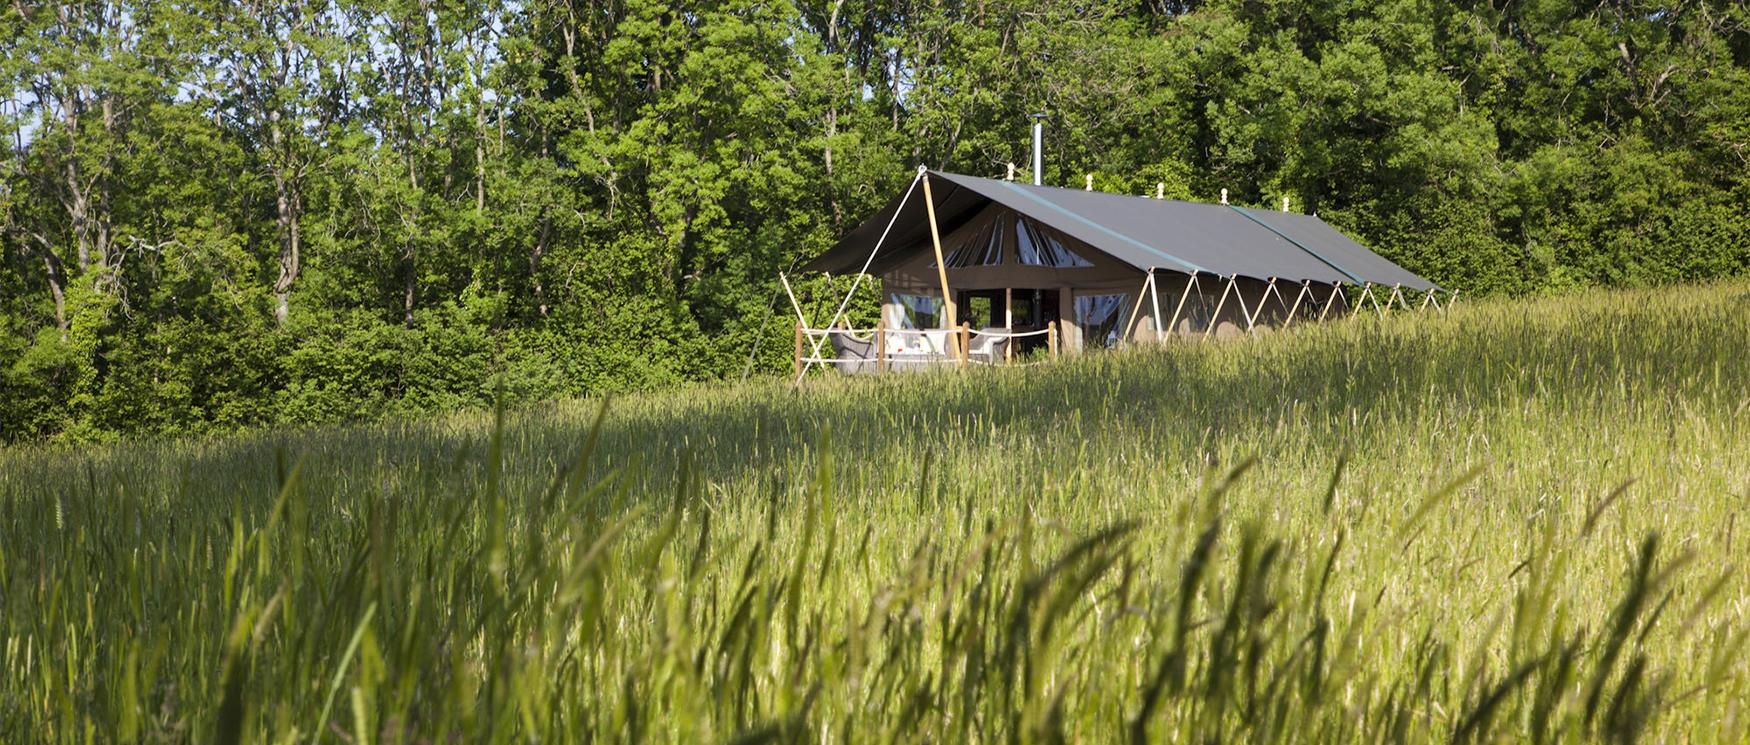 Glamping Sites in Hampshire